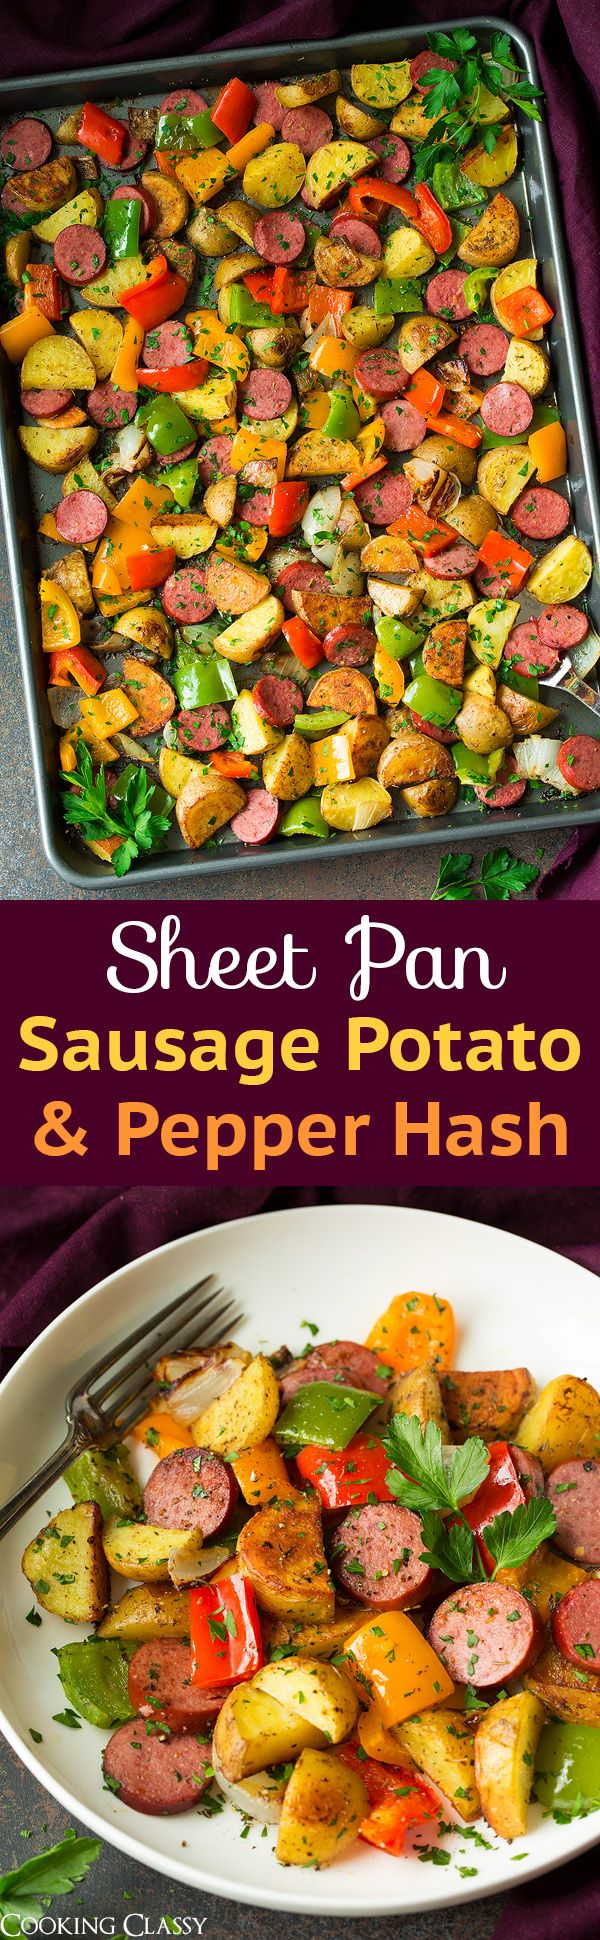 Sheet Pan Turkey Sausage Potato and Pepper Hash - Super easy recipe perfect for dinner or breakfast! Easy clean up.